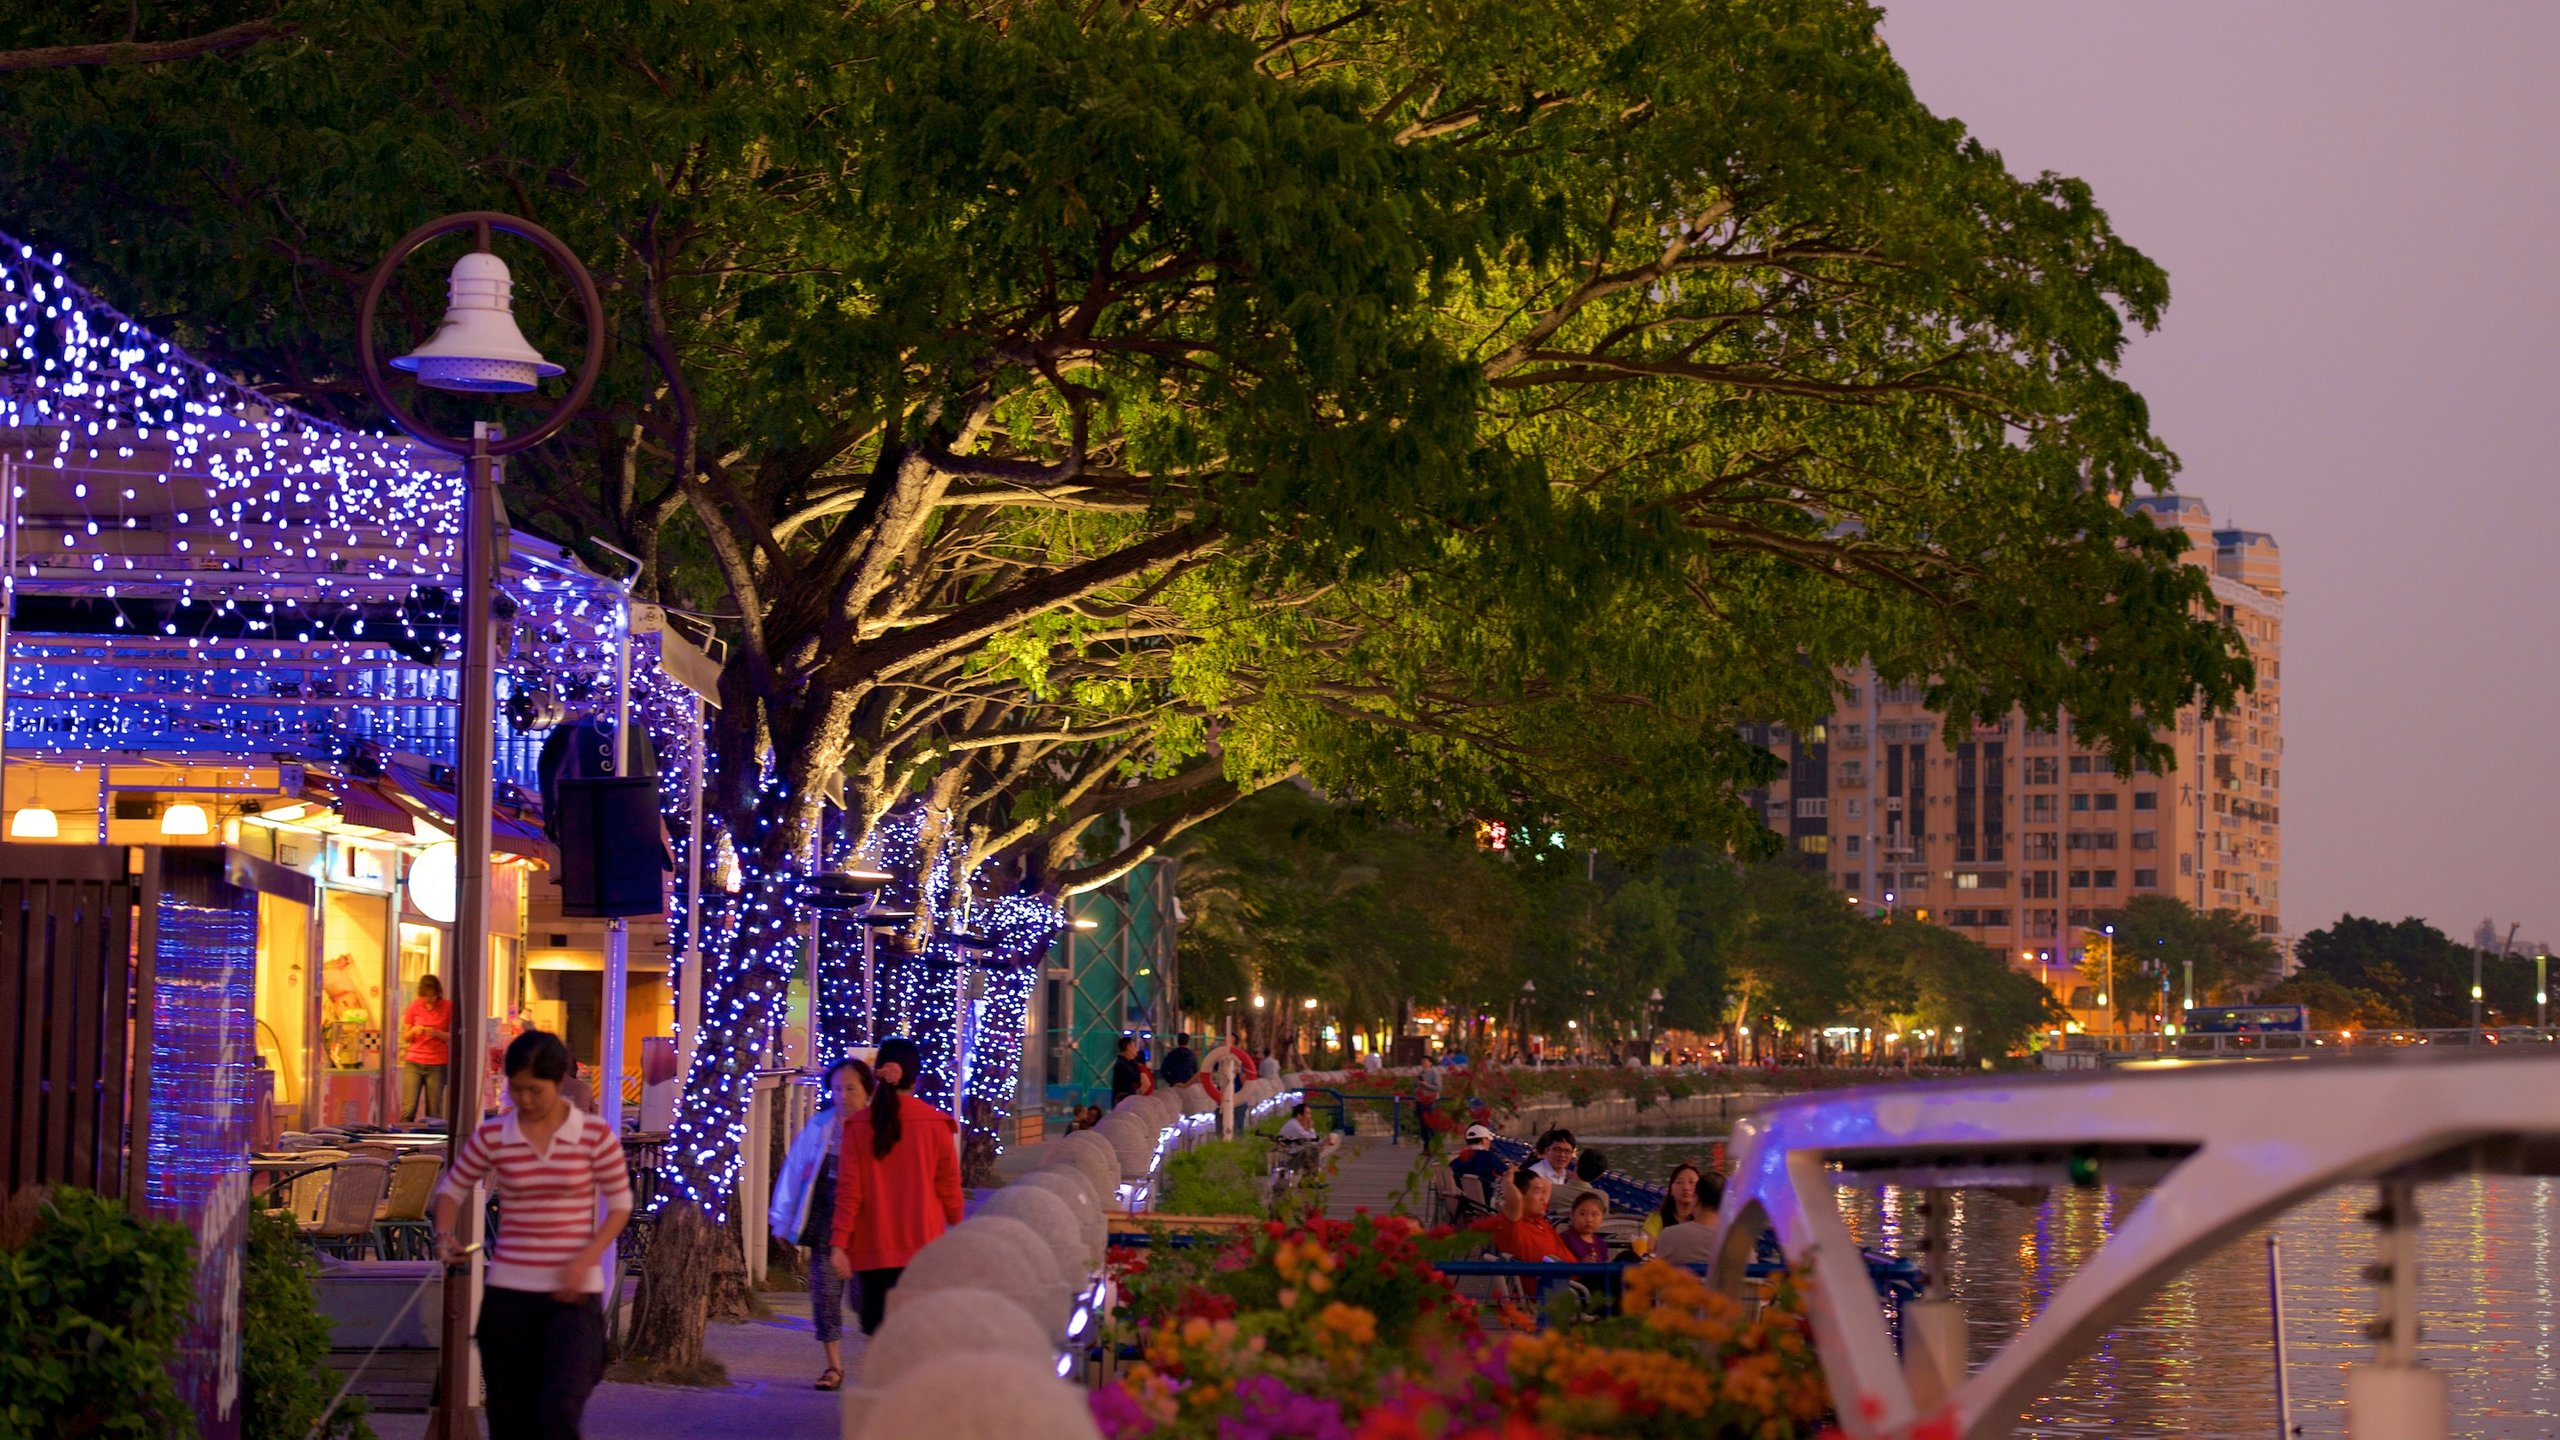 Walk along the banks of Kaohsiung's cultural core, where you will find a night market, a harbor and scenic parks.